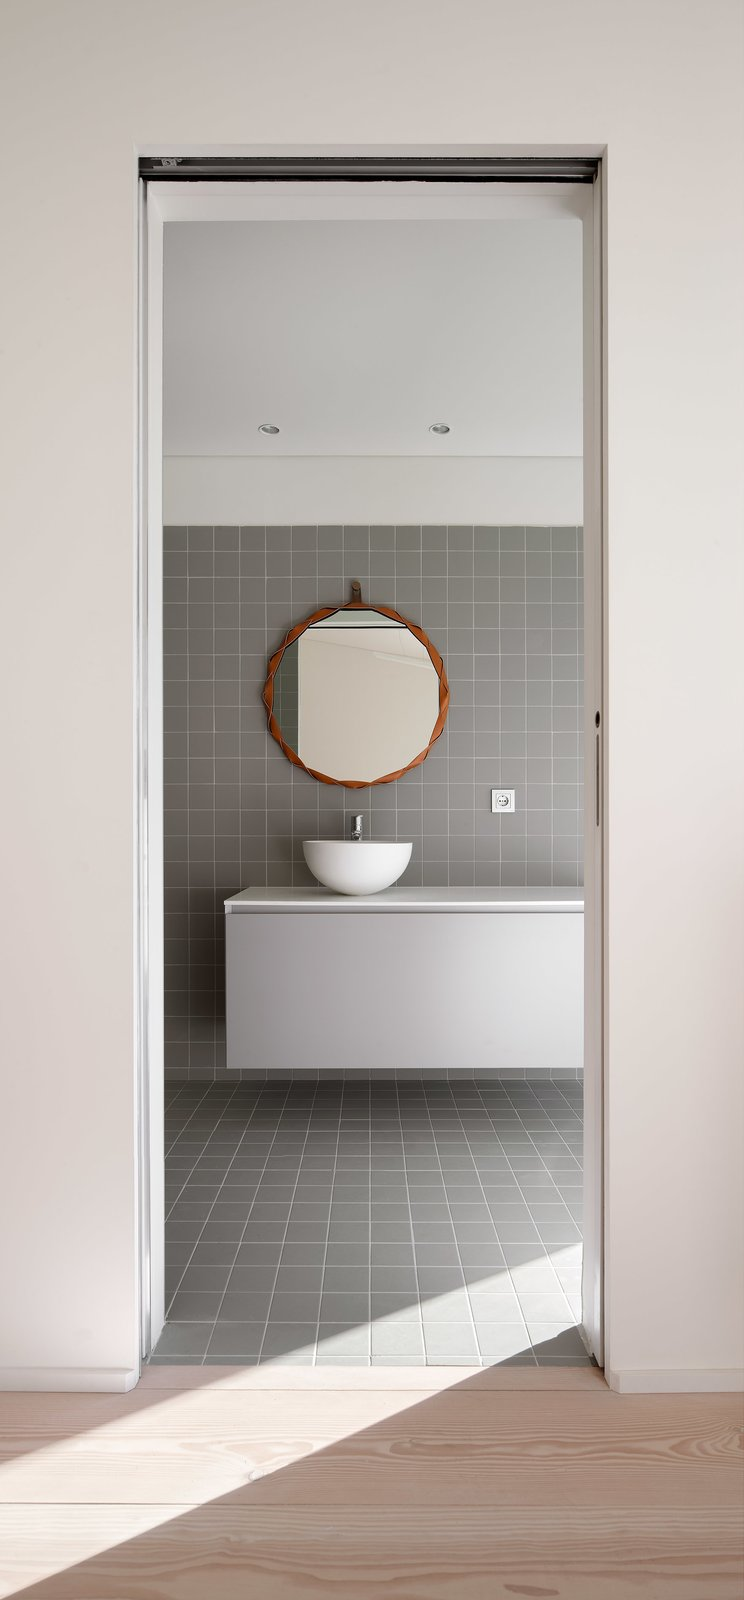 Tagged: Bath Room, Light Hardwood Floor, Vessel Sink, and Ceramic Tile Floor.  The Öcher House by MLMR Architecture Consultancy